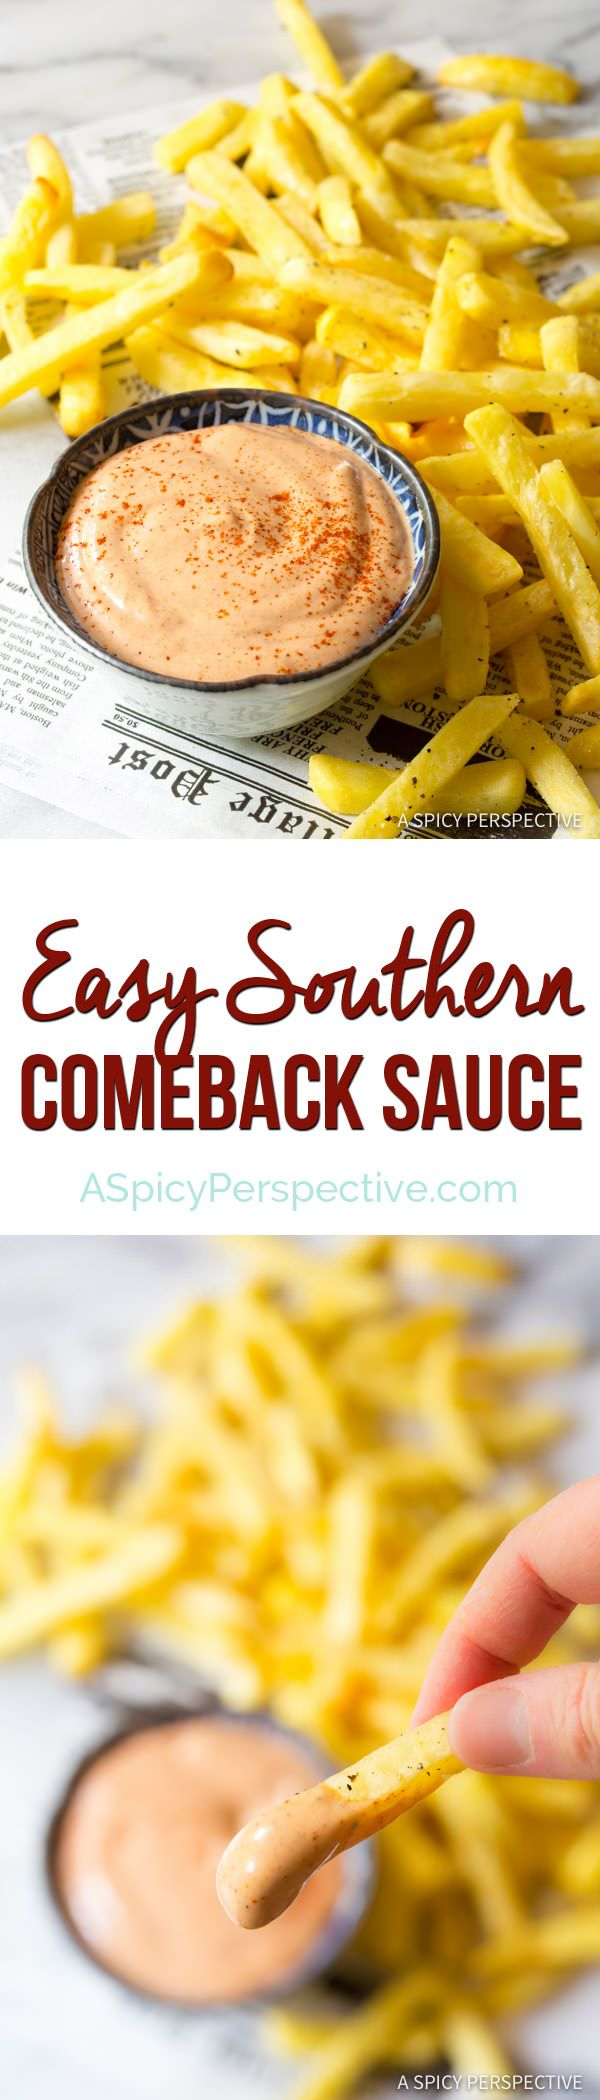 Easy Southern Comeback Sauce Recipe | ASpicyPerspective.com